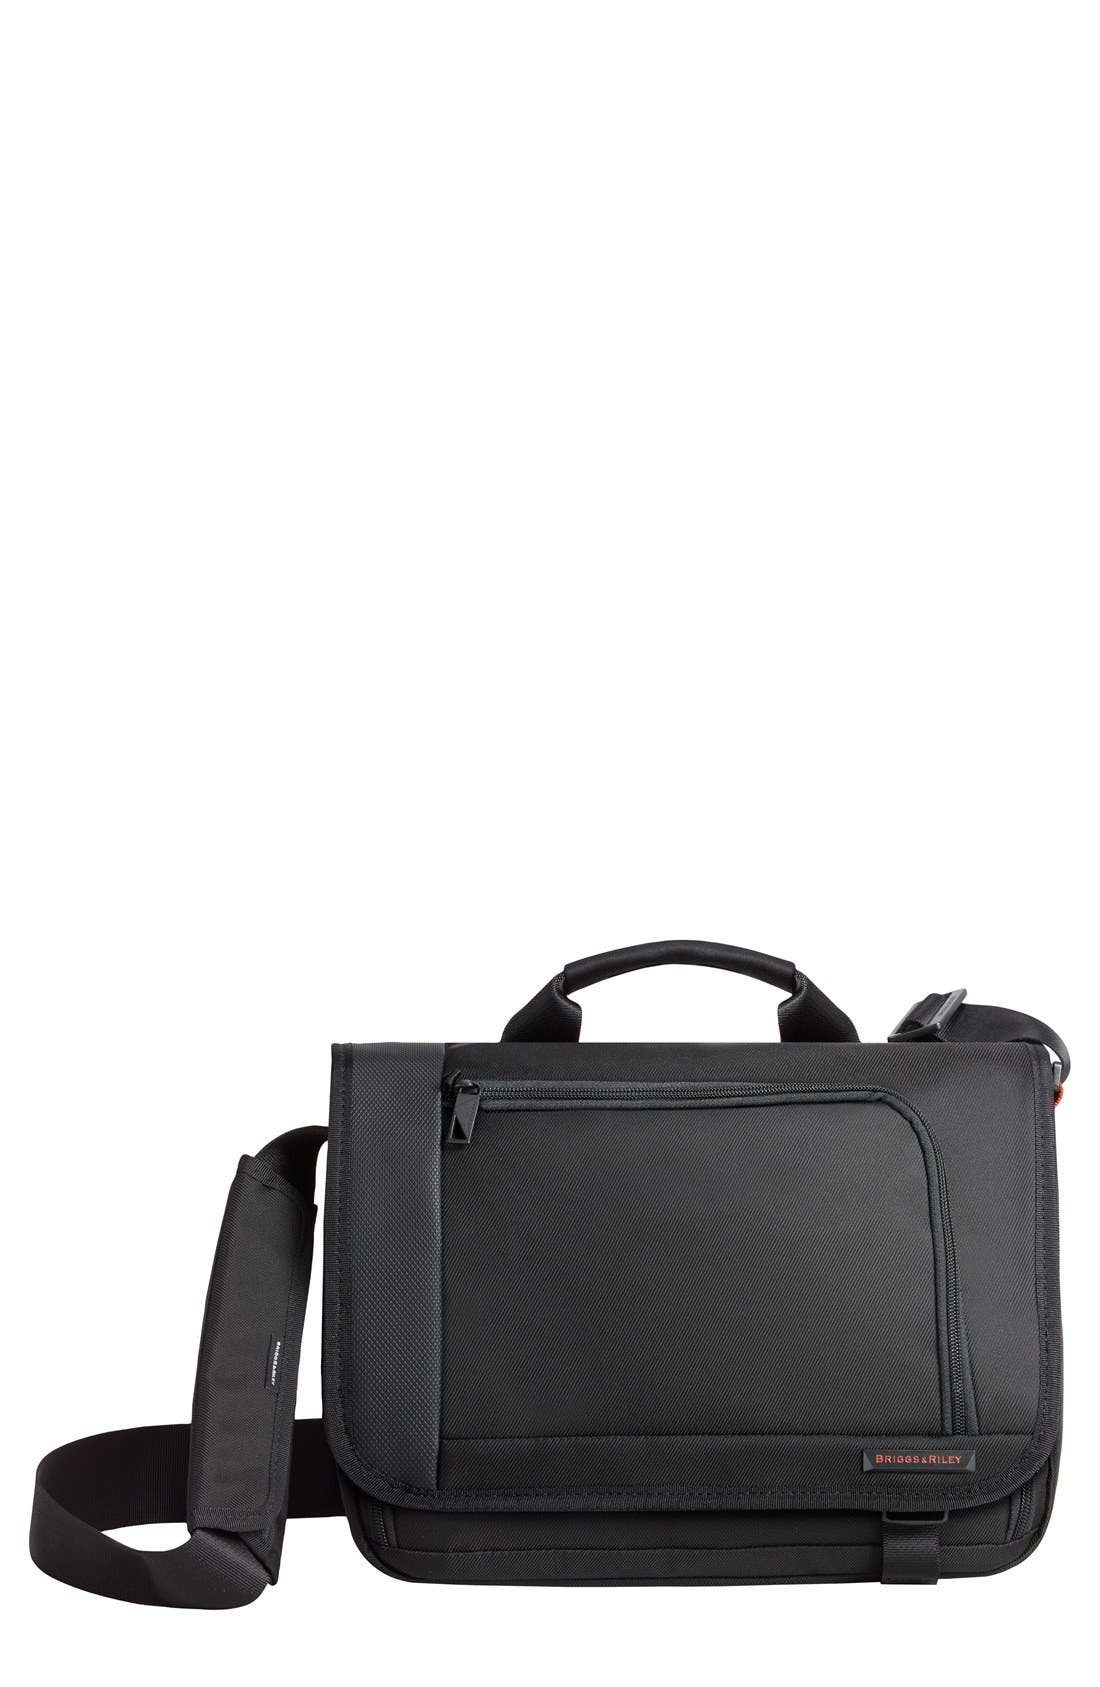 Main Image - Briggs & Riley 'Verb - Instant' Messenger Bag